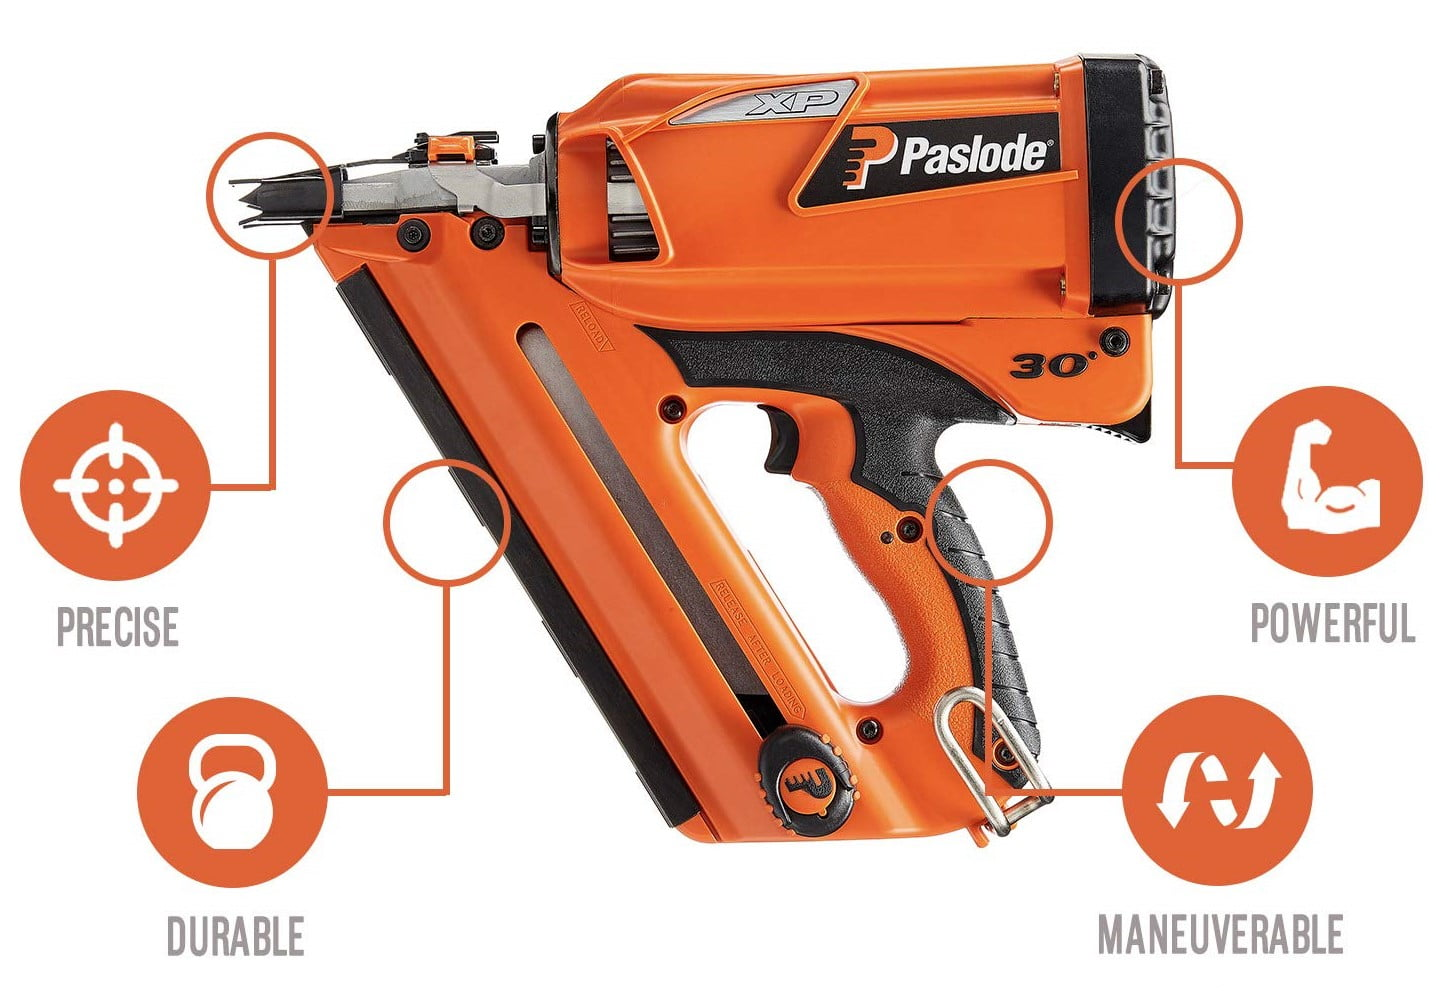 Paslode CF325XP framing nailer